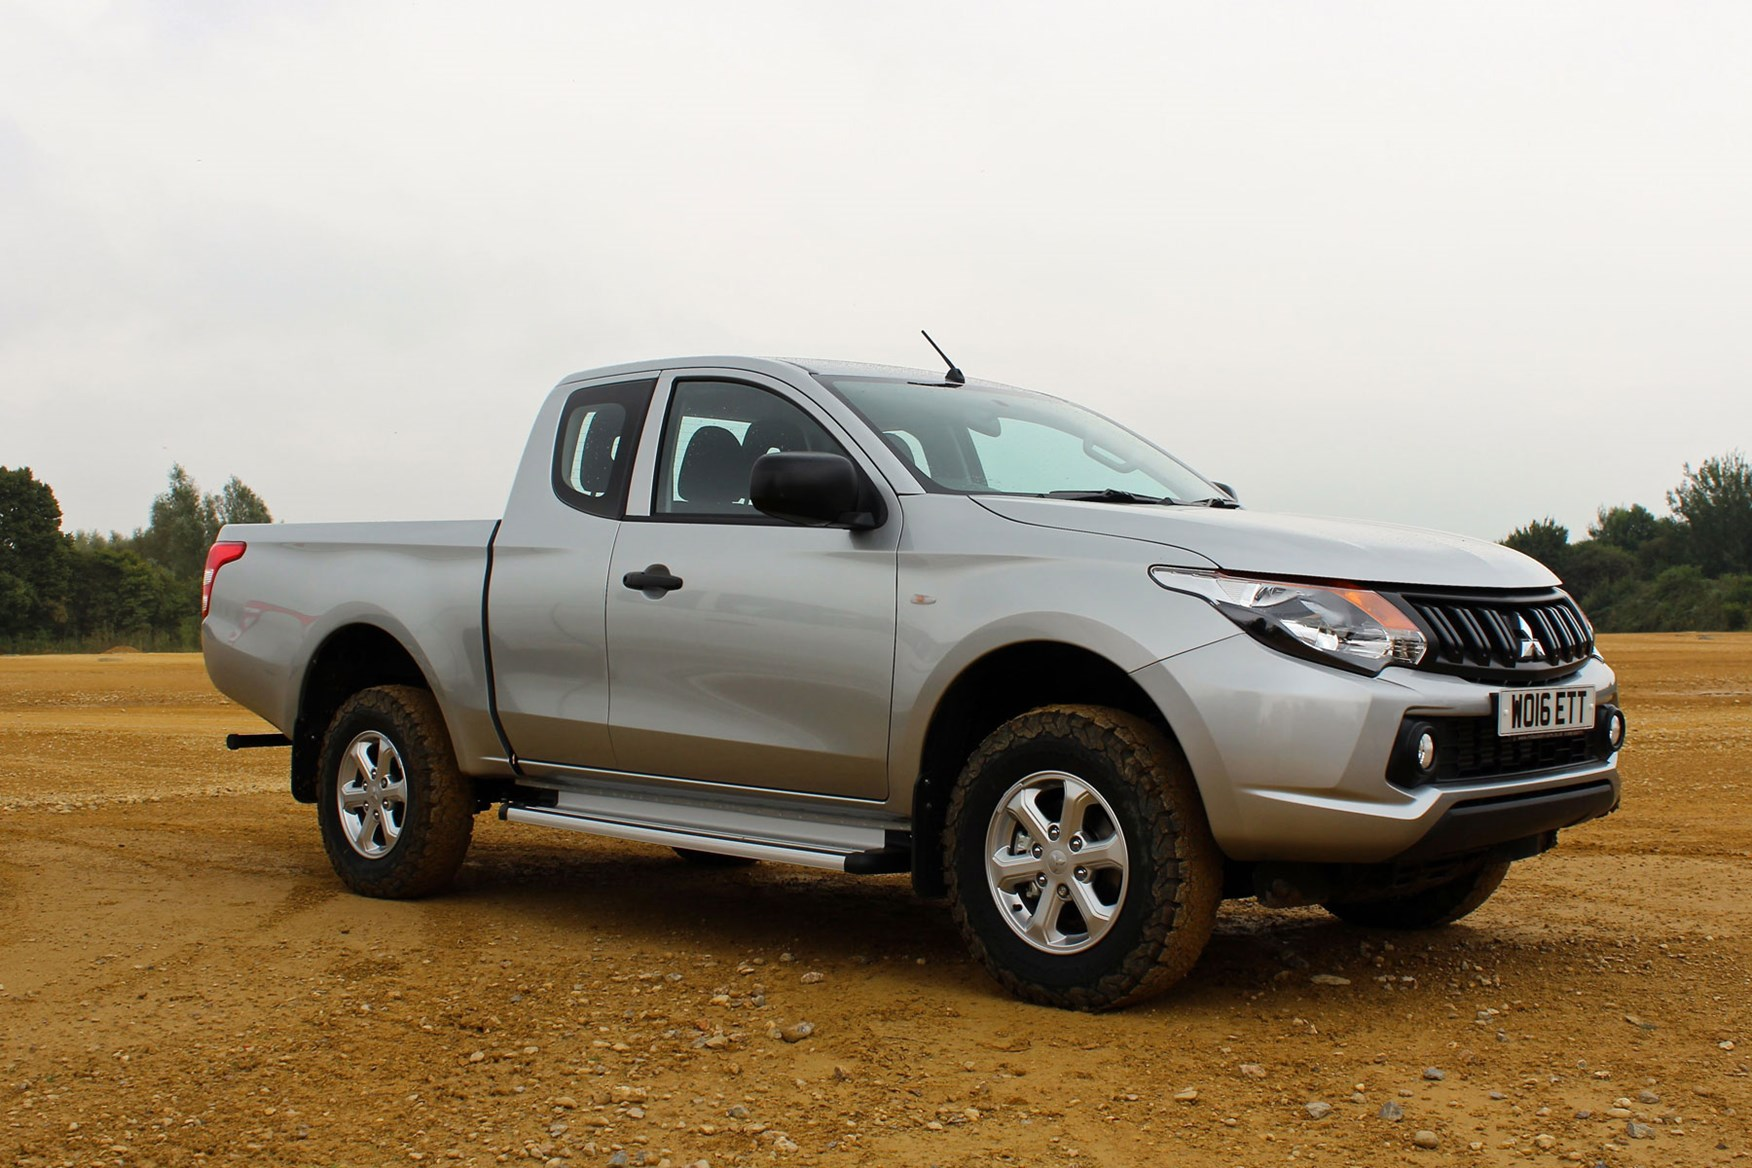 Mitsubishi L200 4Life Club Cab review - front view, silver